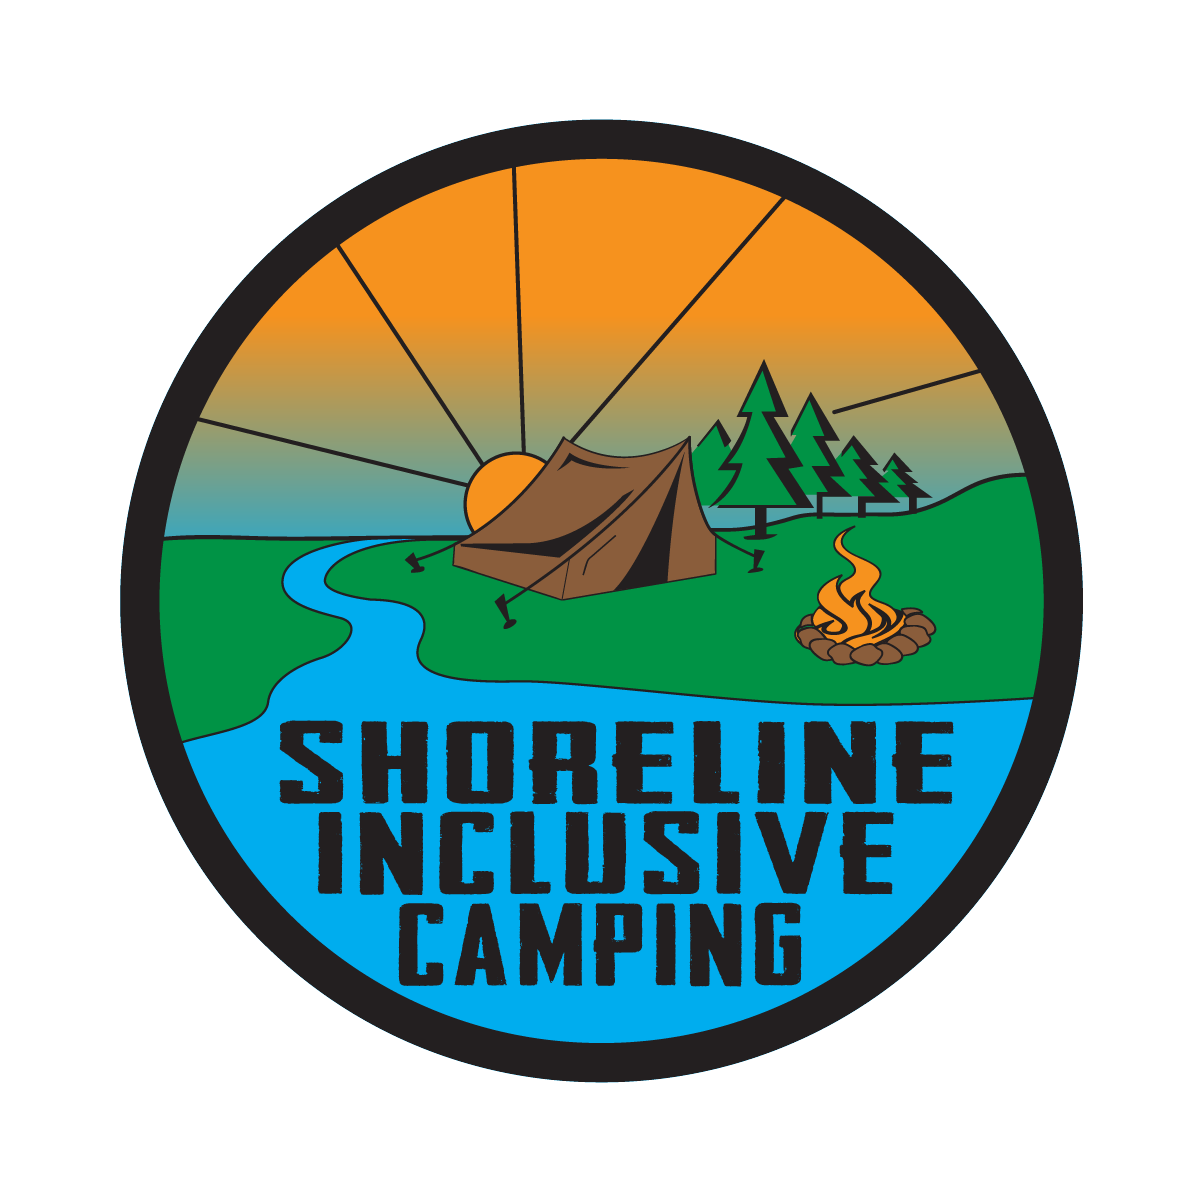 Shoreline Inclusive Camping - commercial photographer, sporting goods, lifestyle photographer, outdoor company